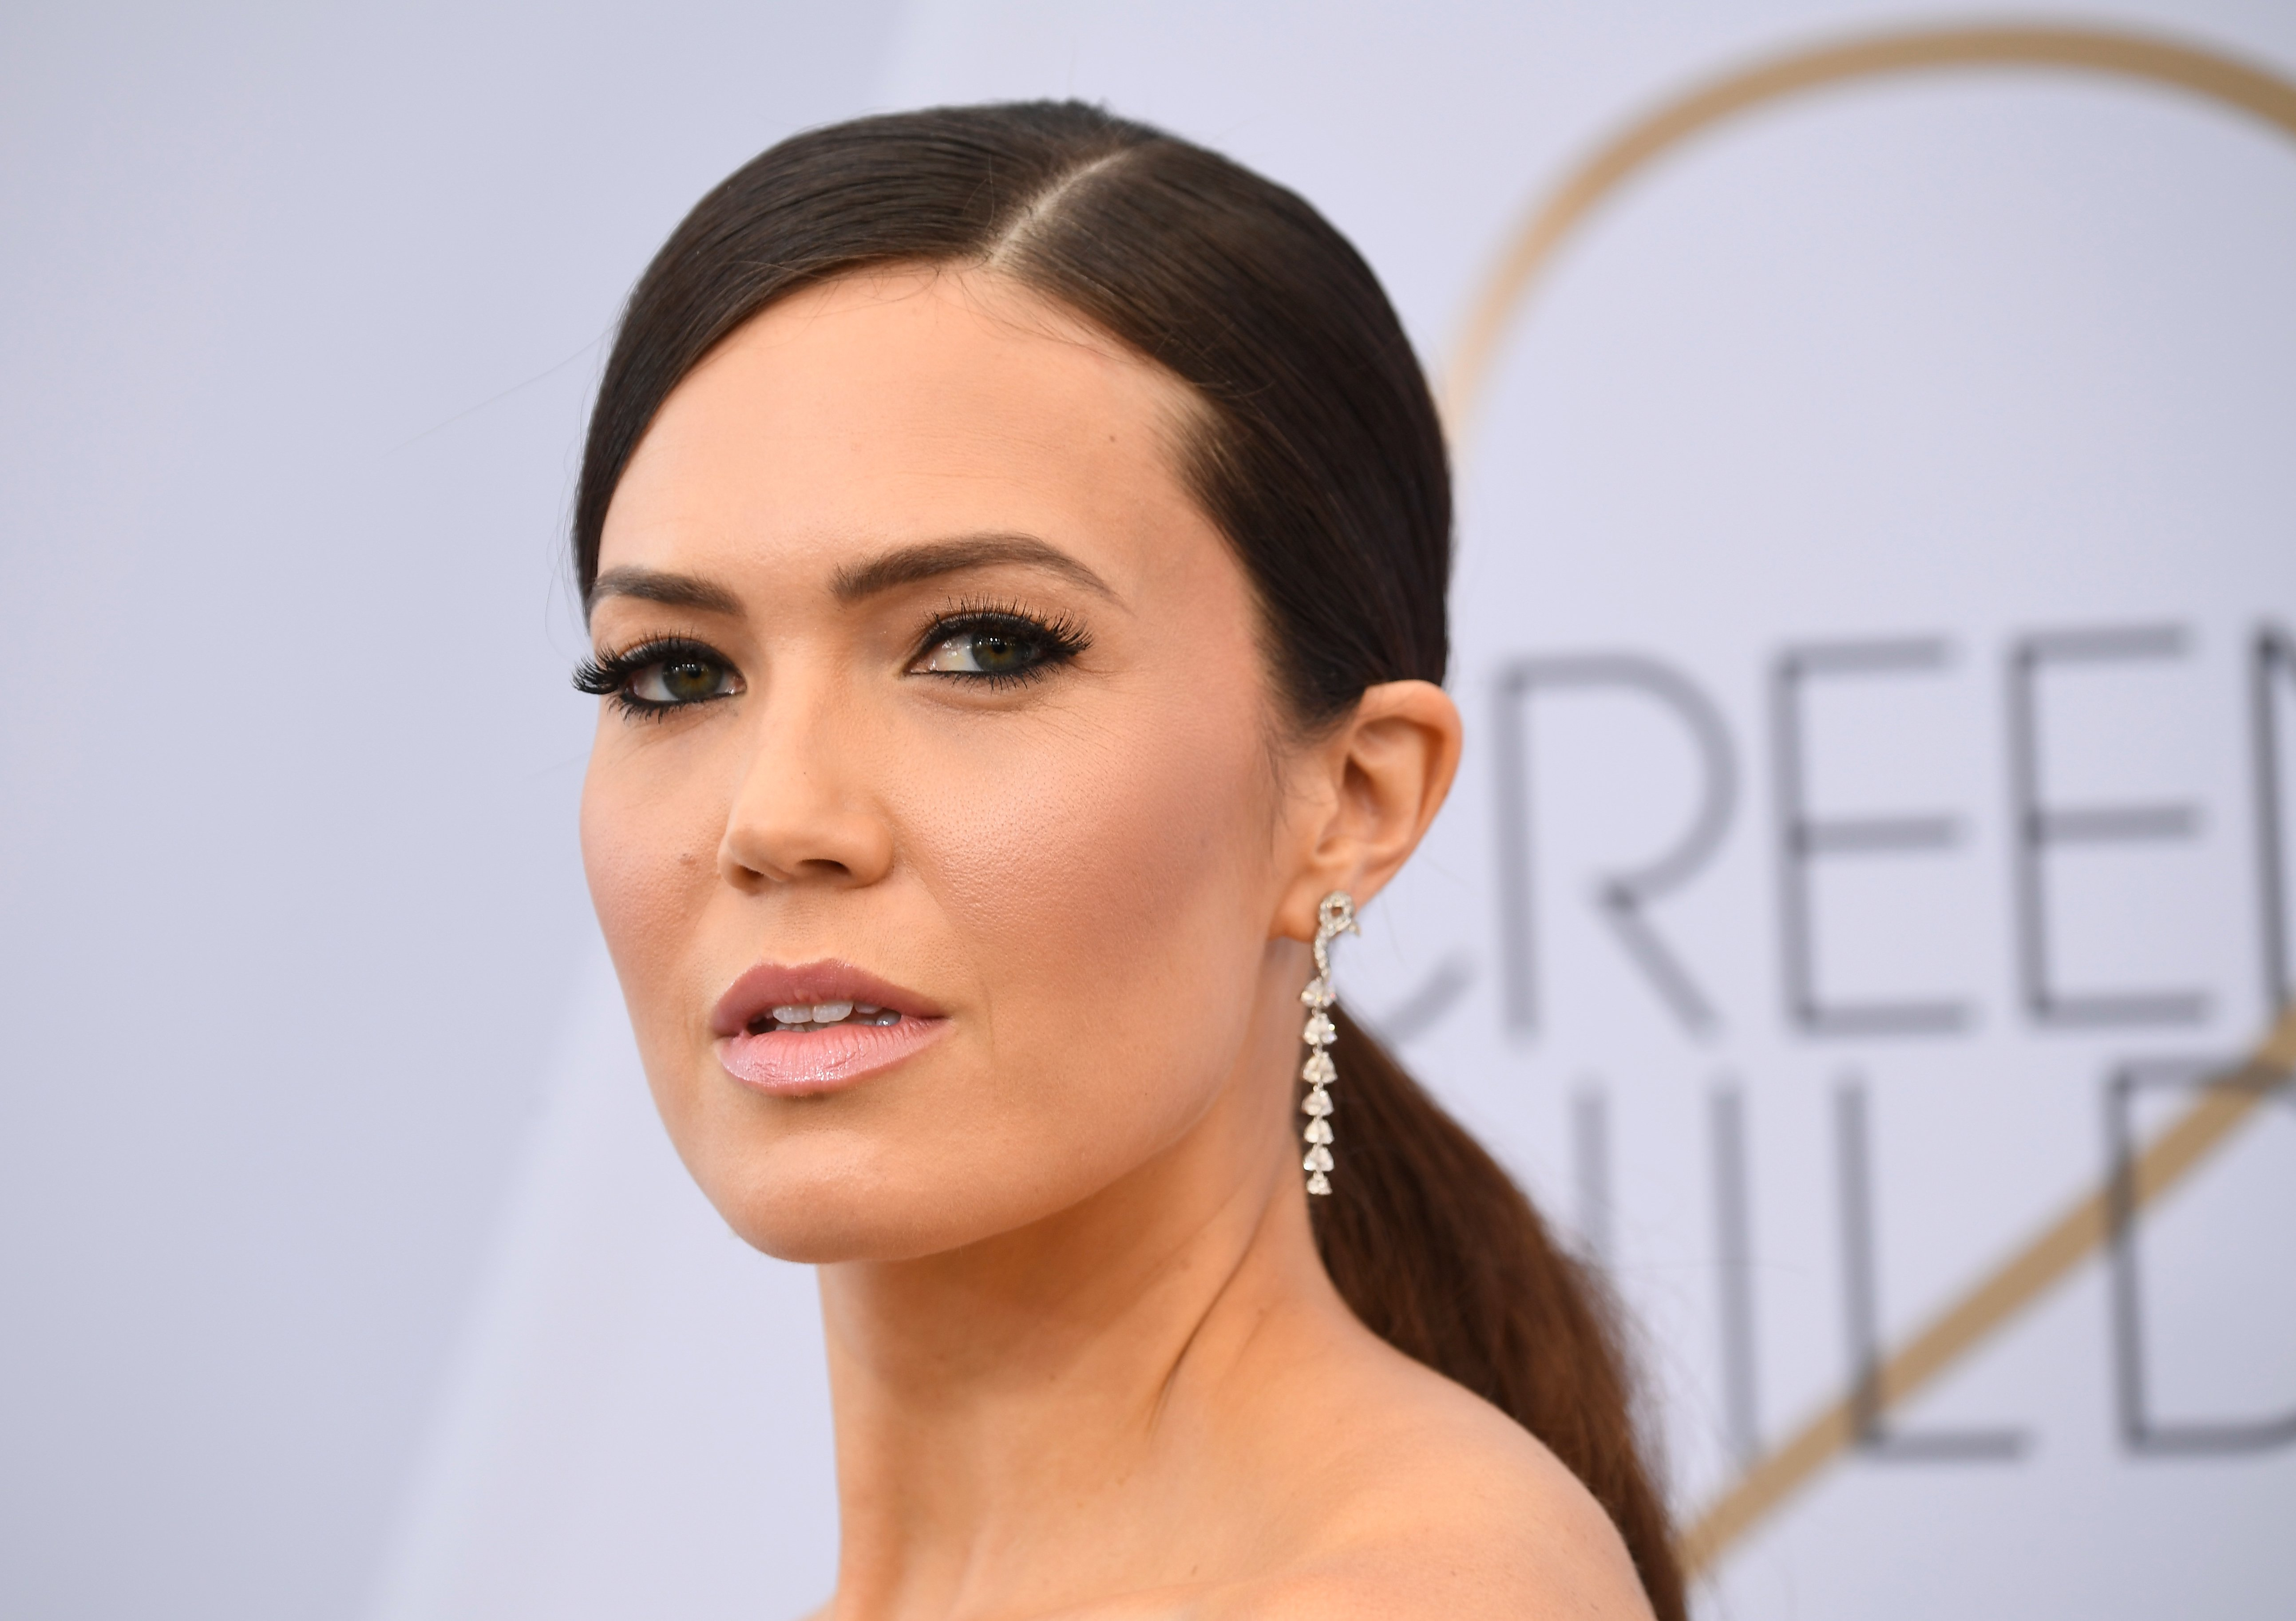 Mandy Moore attends the 25th Annual Screen Actors Guild Awards on January 27, 2019 | Photo: Getty Images.